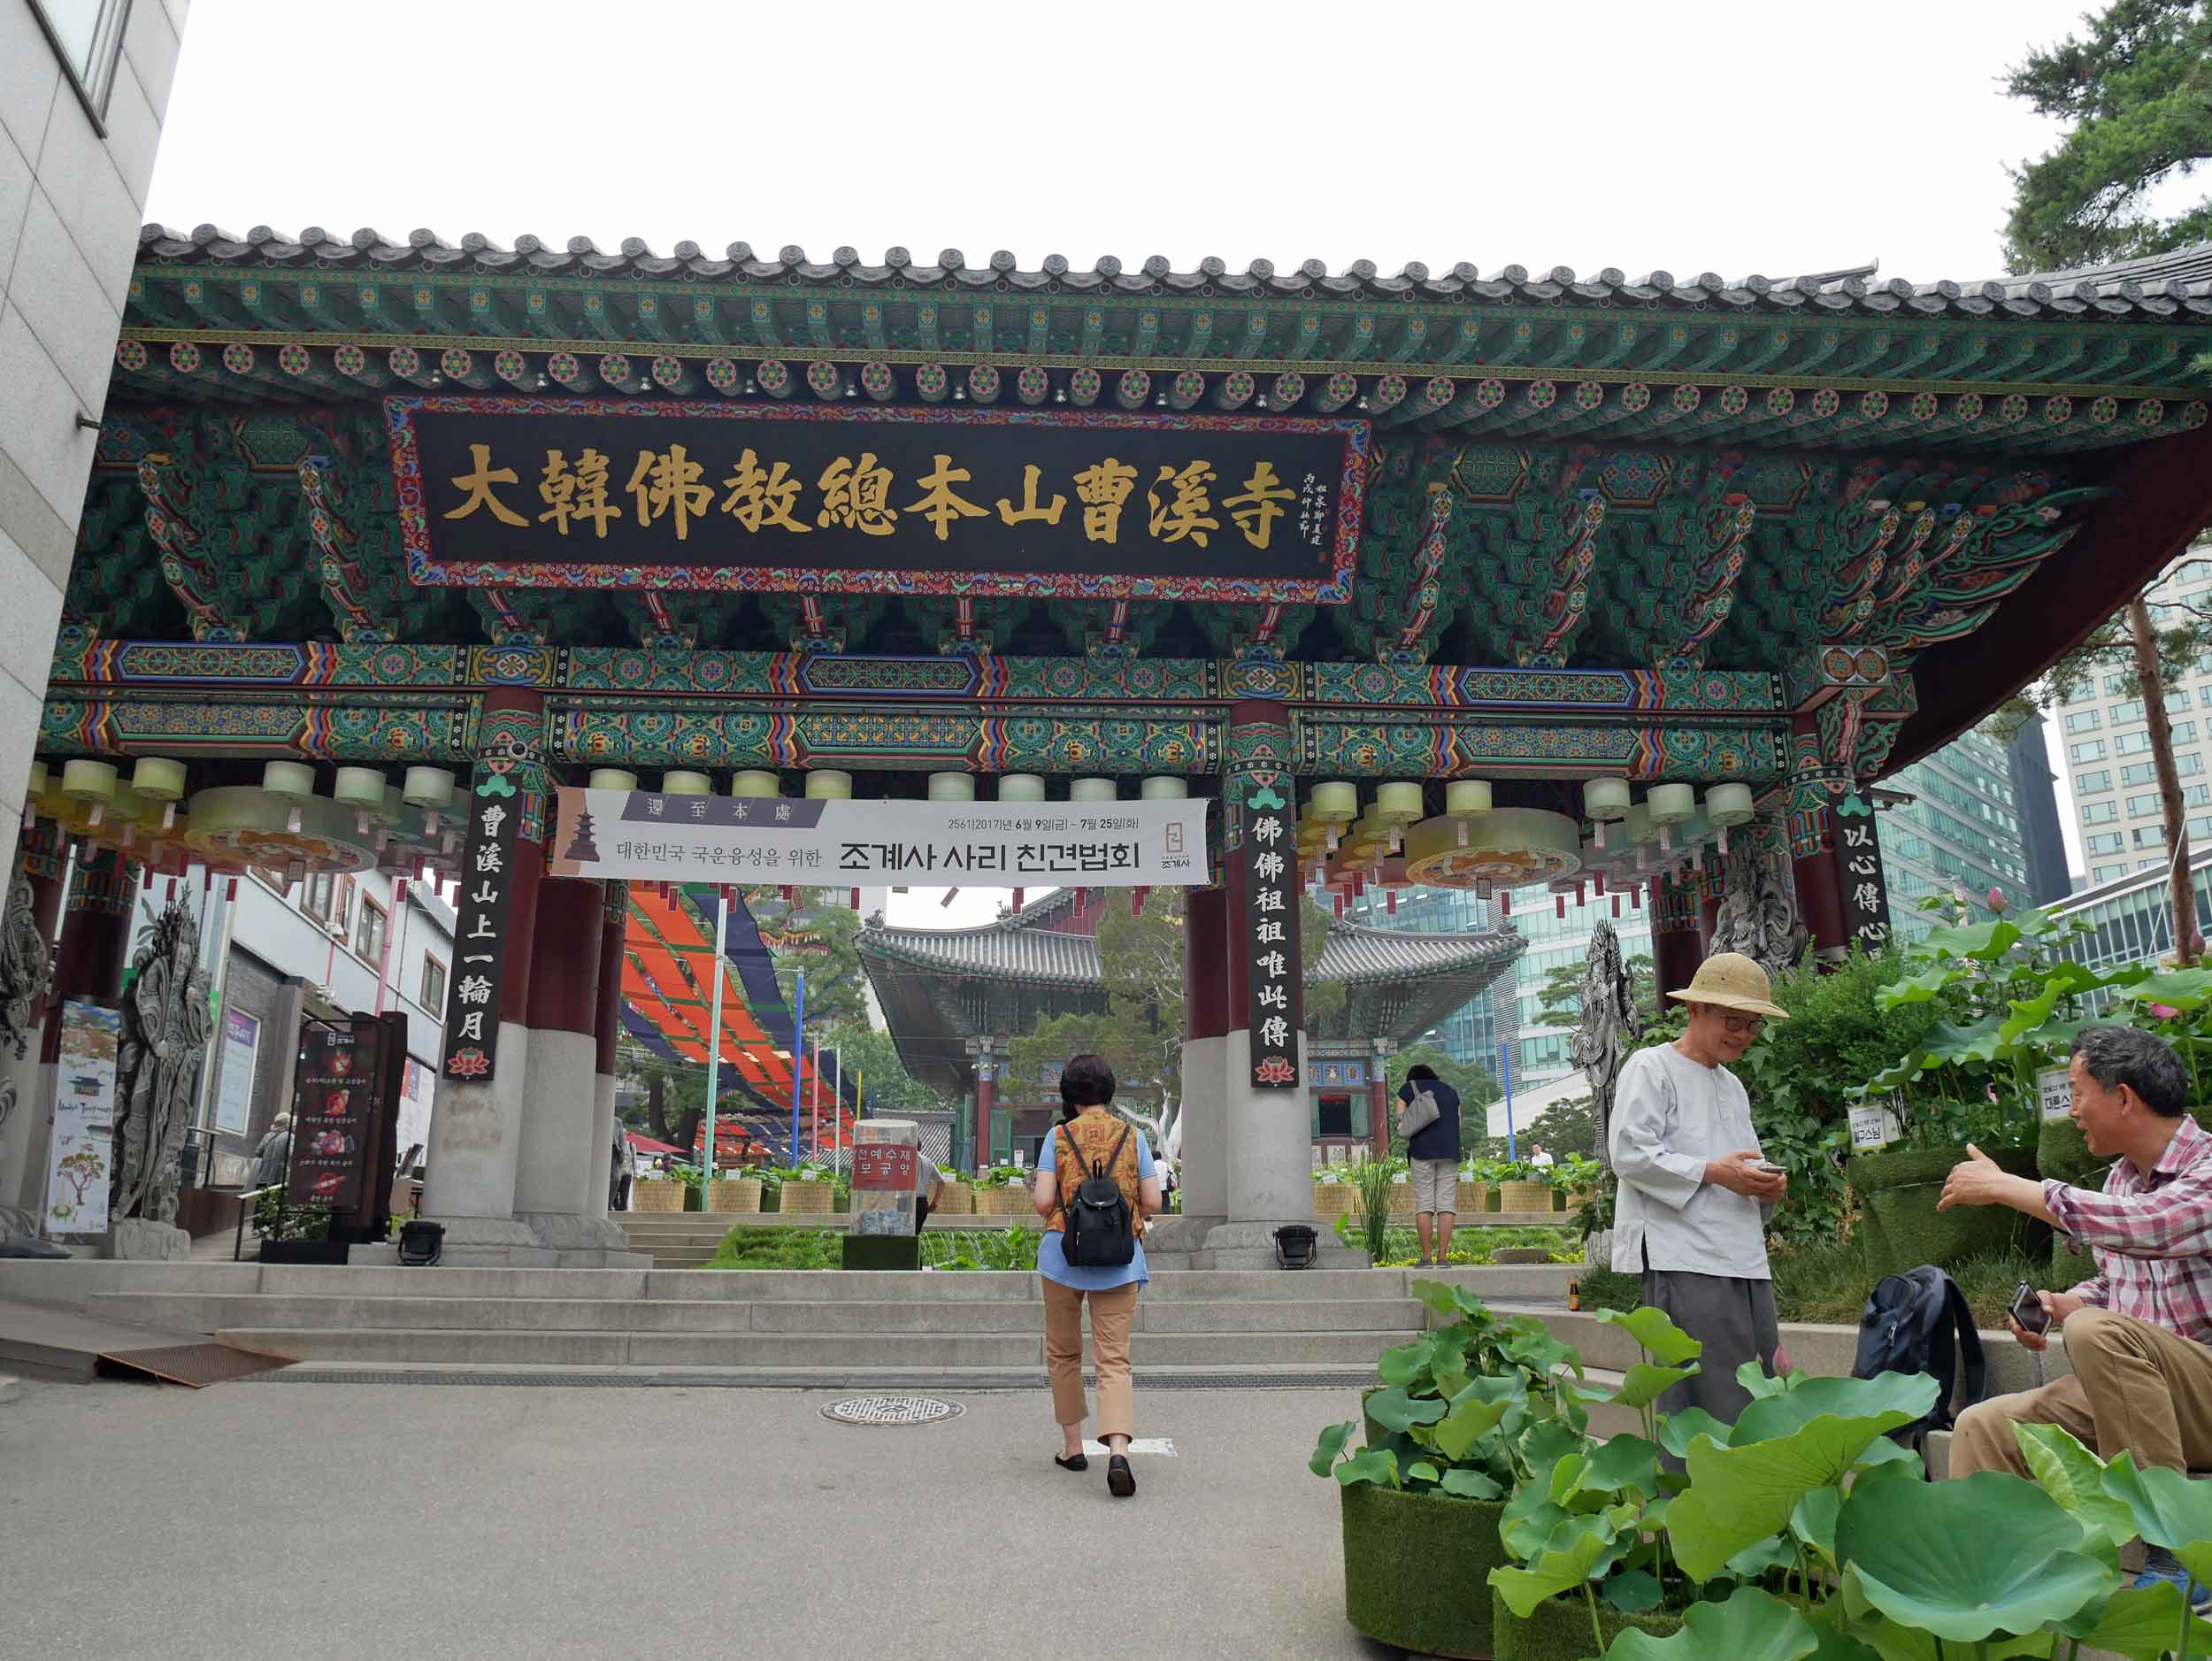 Jogyesa Temple was a flurry of activity, notably the many potted lotus flowers in front of the main hall.